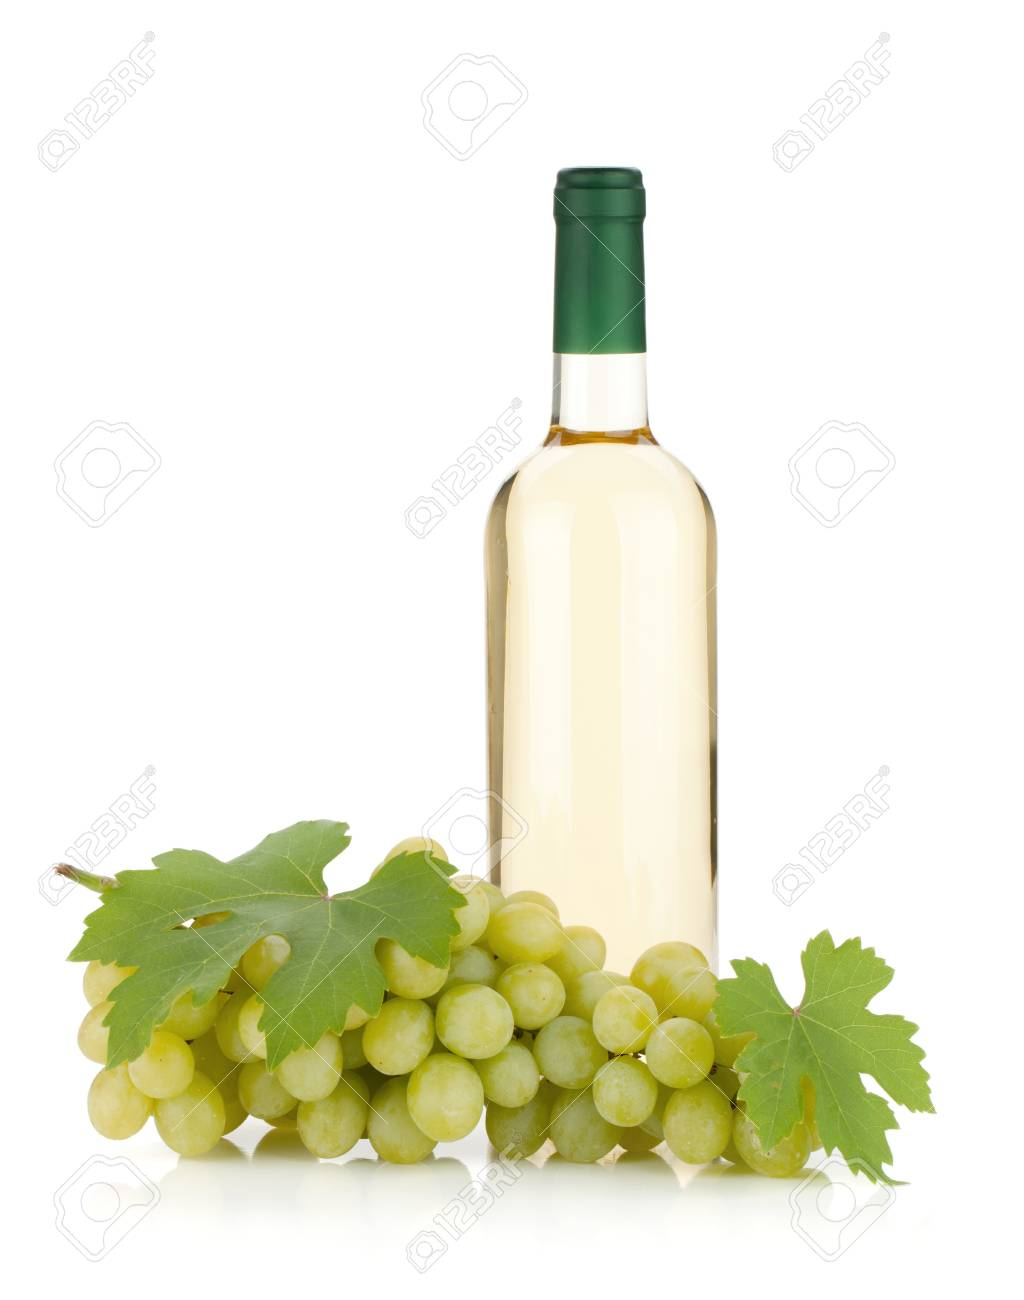 White wine bottle and grapes. Isolated on white background Stock Photo - 10366433